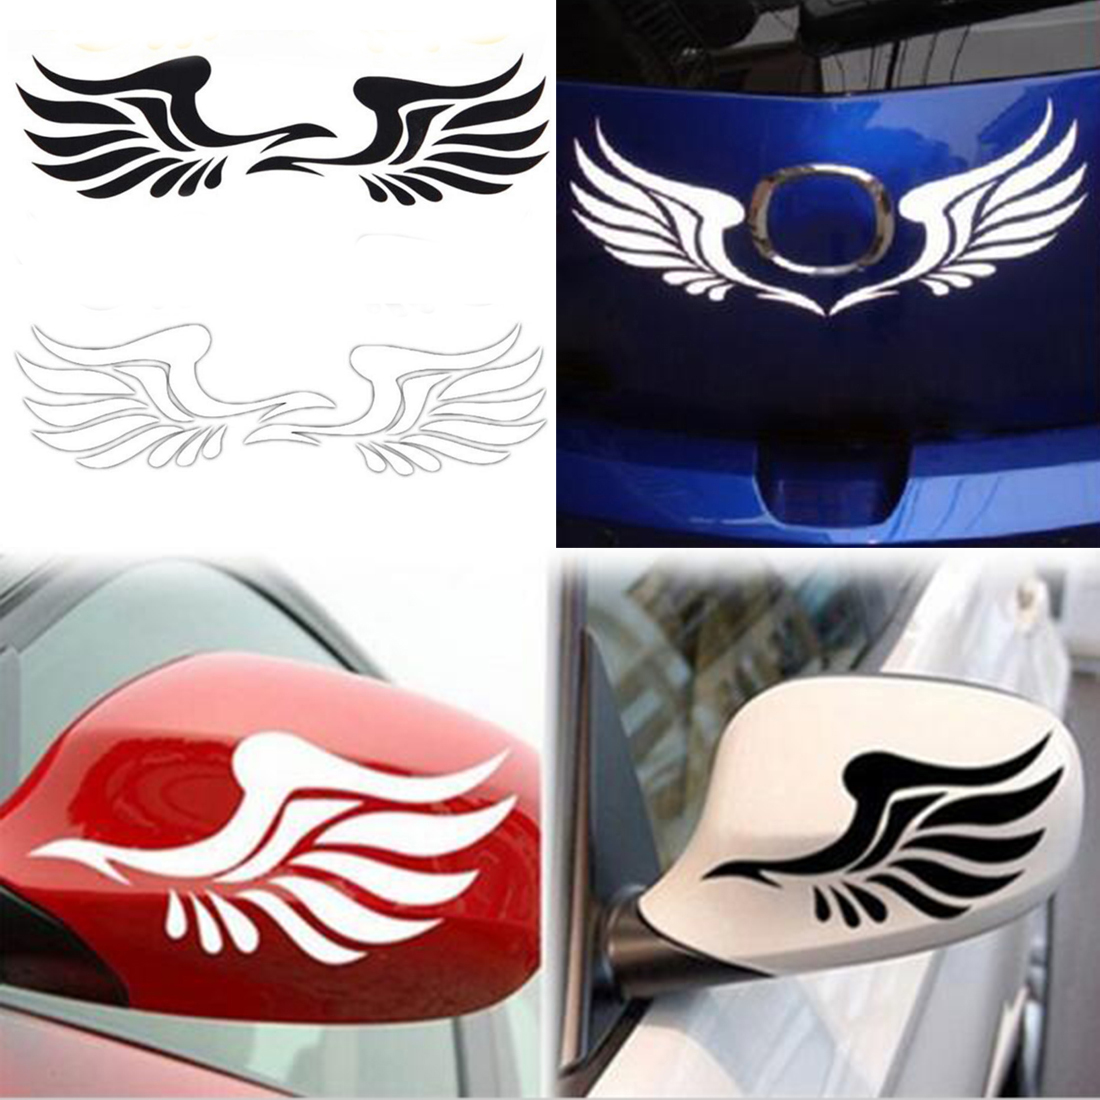 Car mirror sticker design - 2pcs New Design Personality Fire Wings Side Mirror Car Stickers Decorative Stickers Car Styling Free Shipping